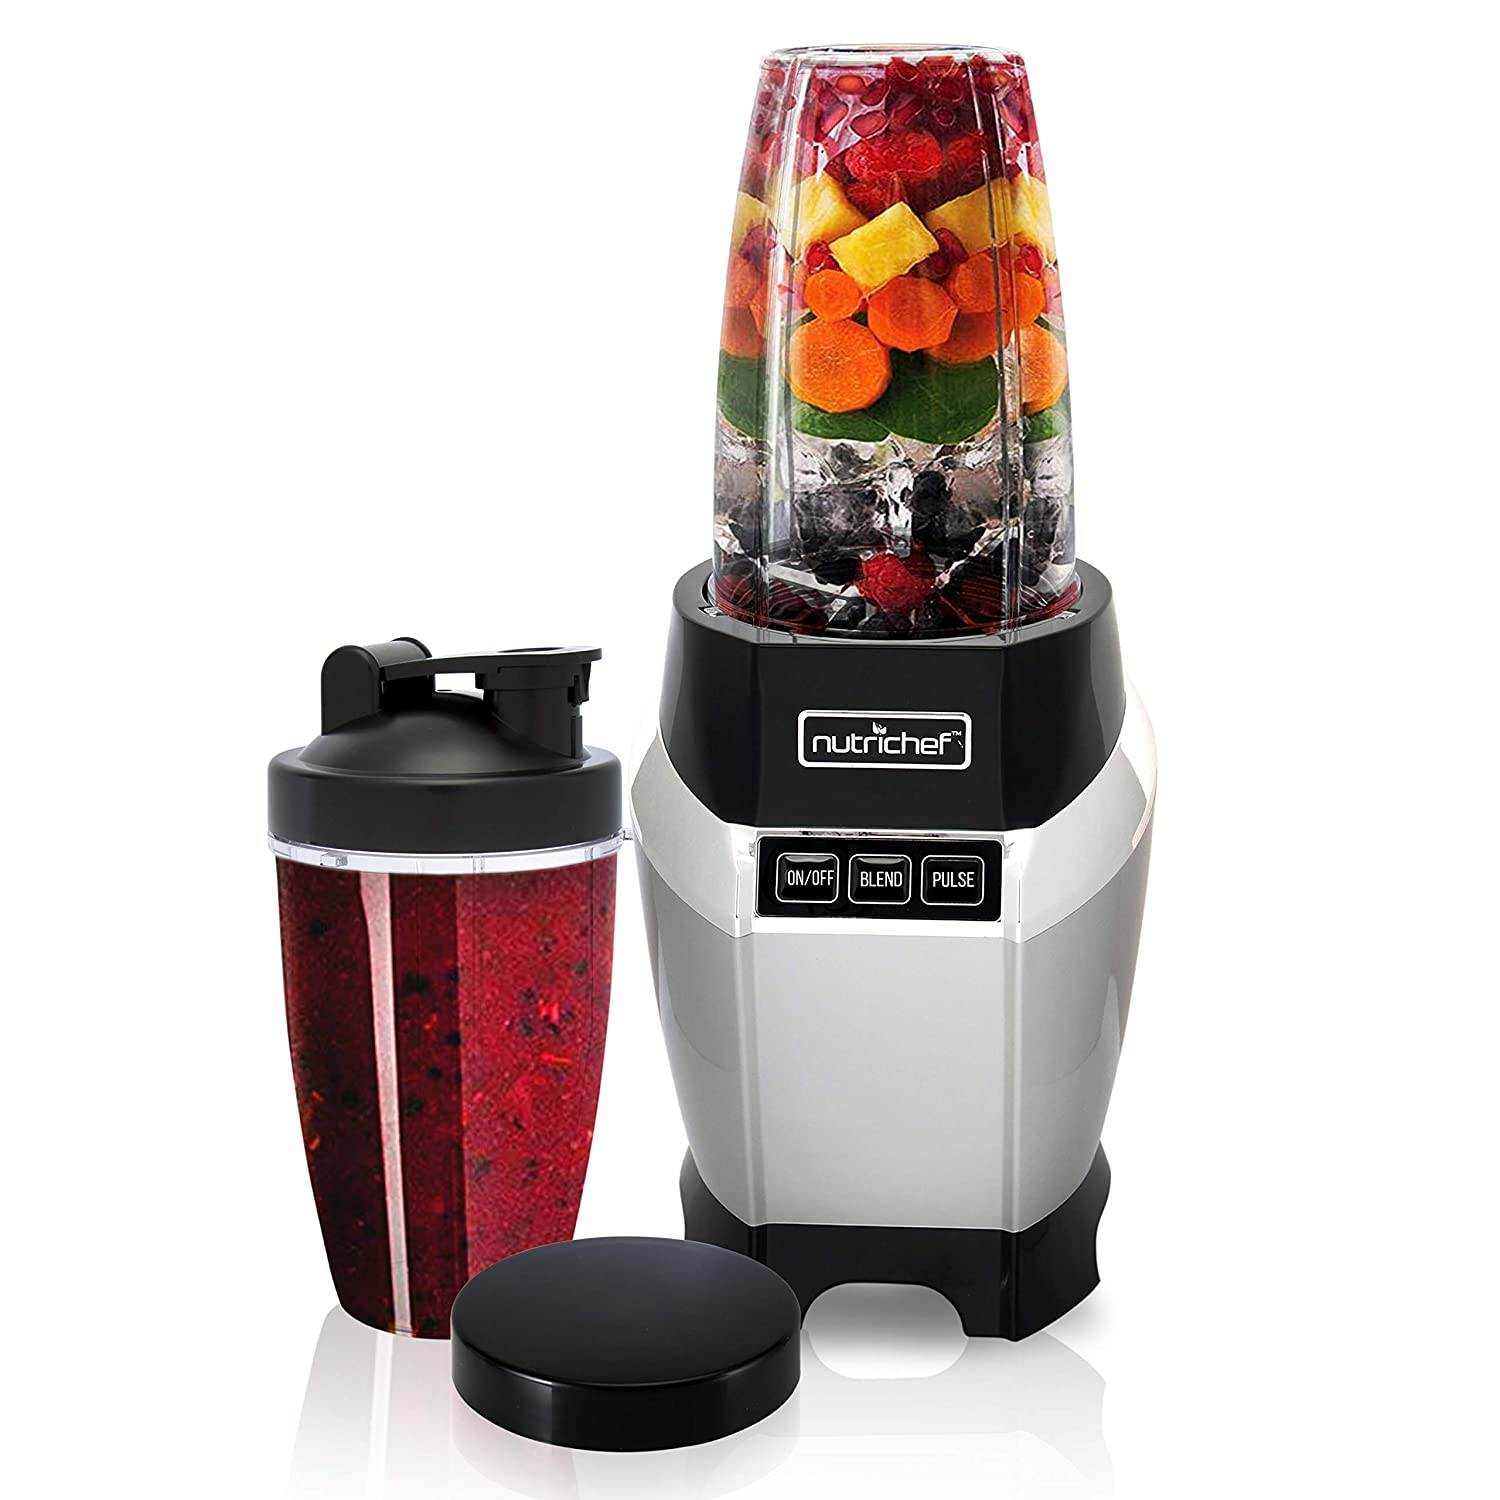 Personal Electric Single Serve Blender-Small Professional Kitchen Countertop Mini Blender for Shakes & Smoothies w/Pulse Blend, Convenient Lid Cover, Portable 20 & 24 oz Cups-Nutrichef NCBL1000